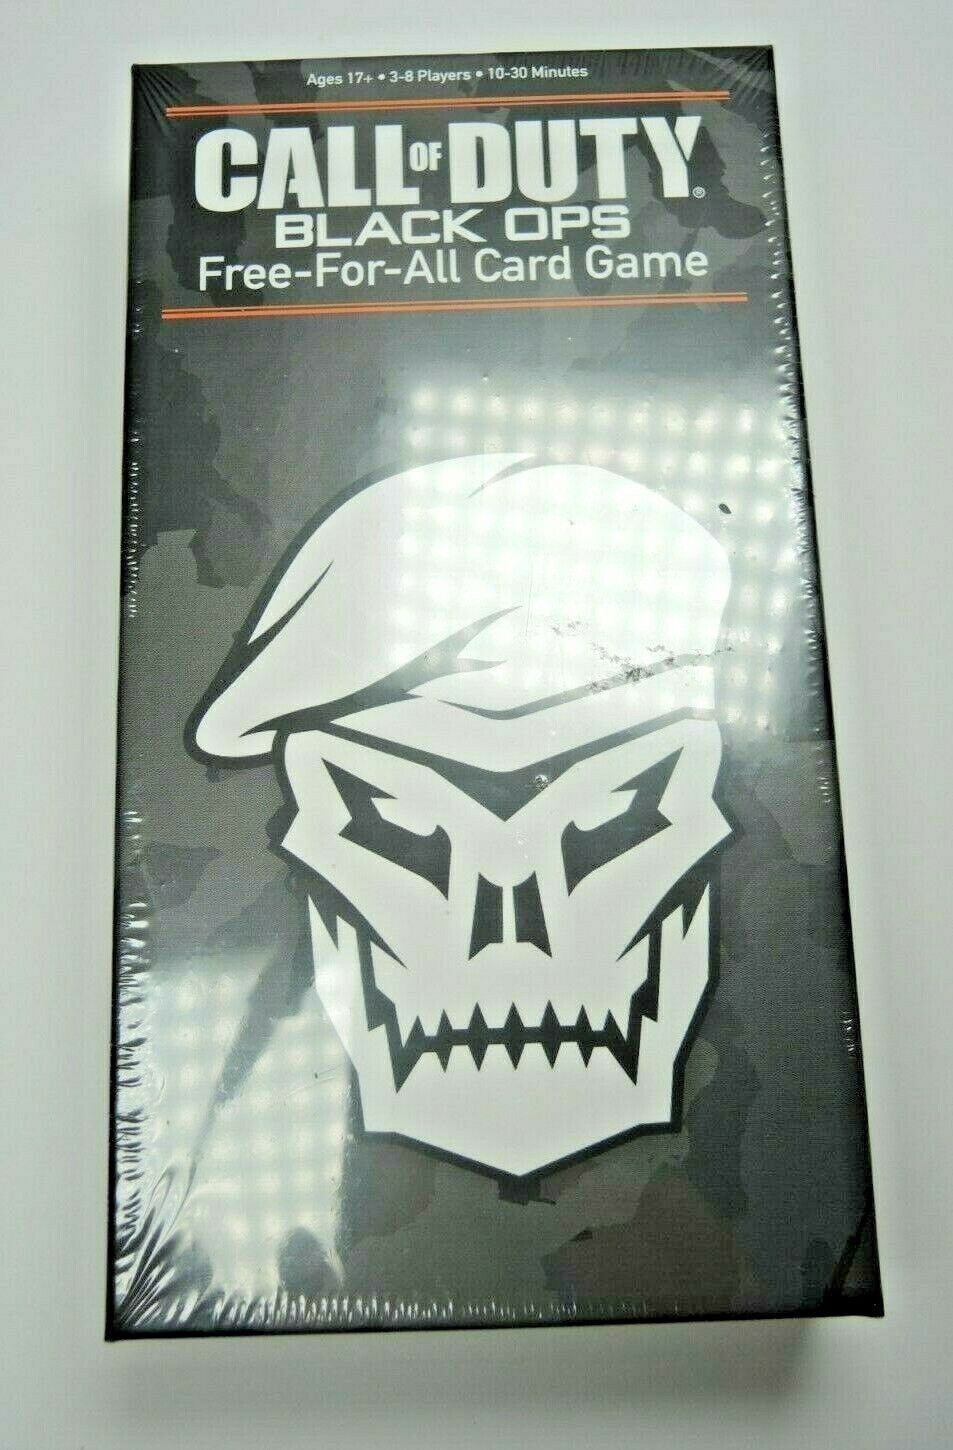 Call of Duty Black Ops Free for All Card Game Mission USAopoly Activision Gear - Fazoom